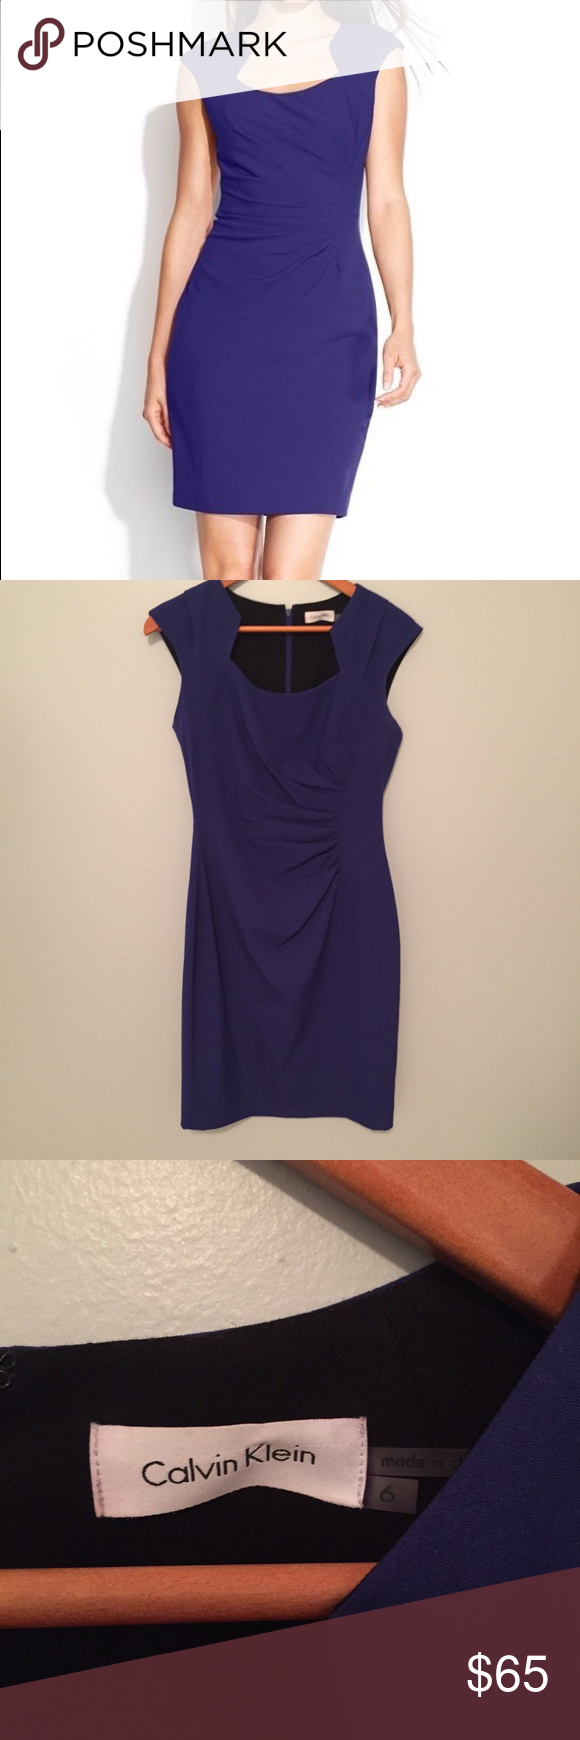 Calvin Klein sheath dress Beautiful plum color with flattering neckline.  Like new condition!  Fits TTS. Measurements happily given upon request!  No trades. Reasonable offers welcome 🍾Note: 20% off bundles of 2+ items in my closet! Calvin Klein Dresses